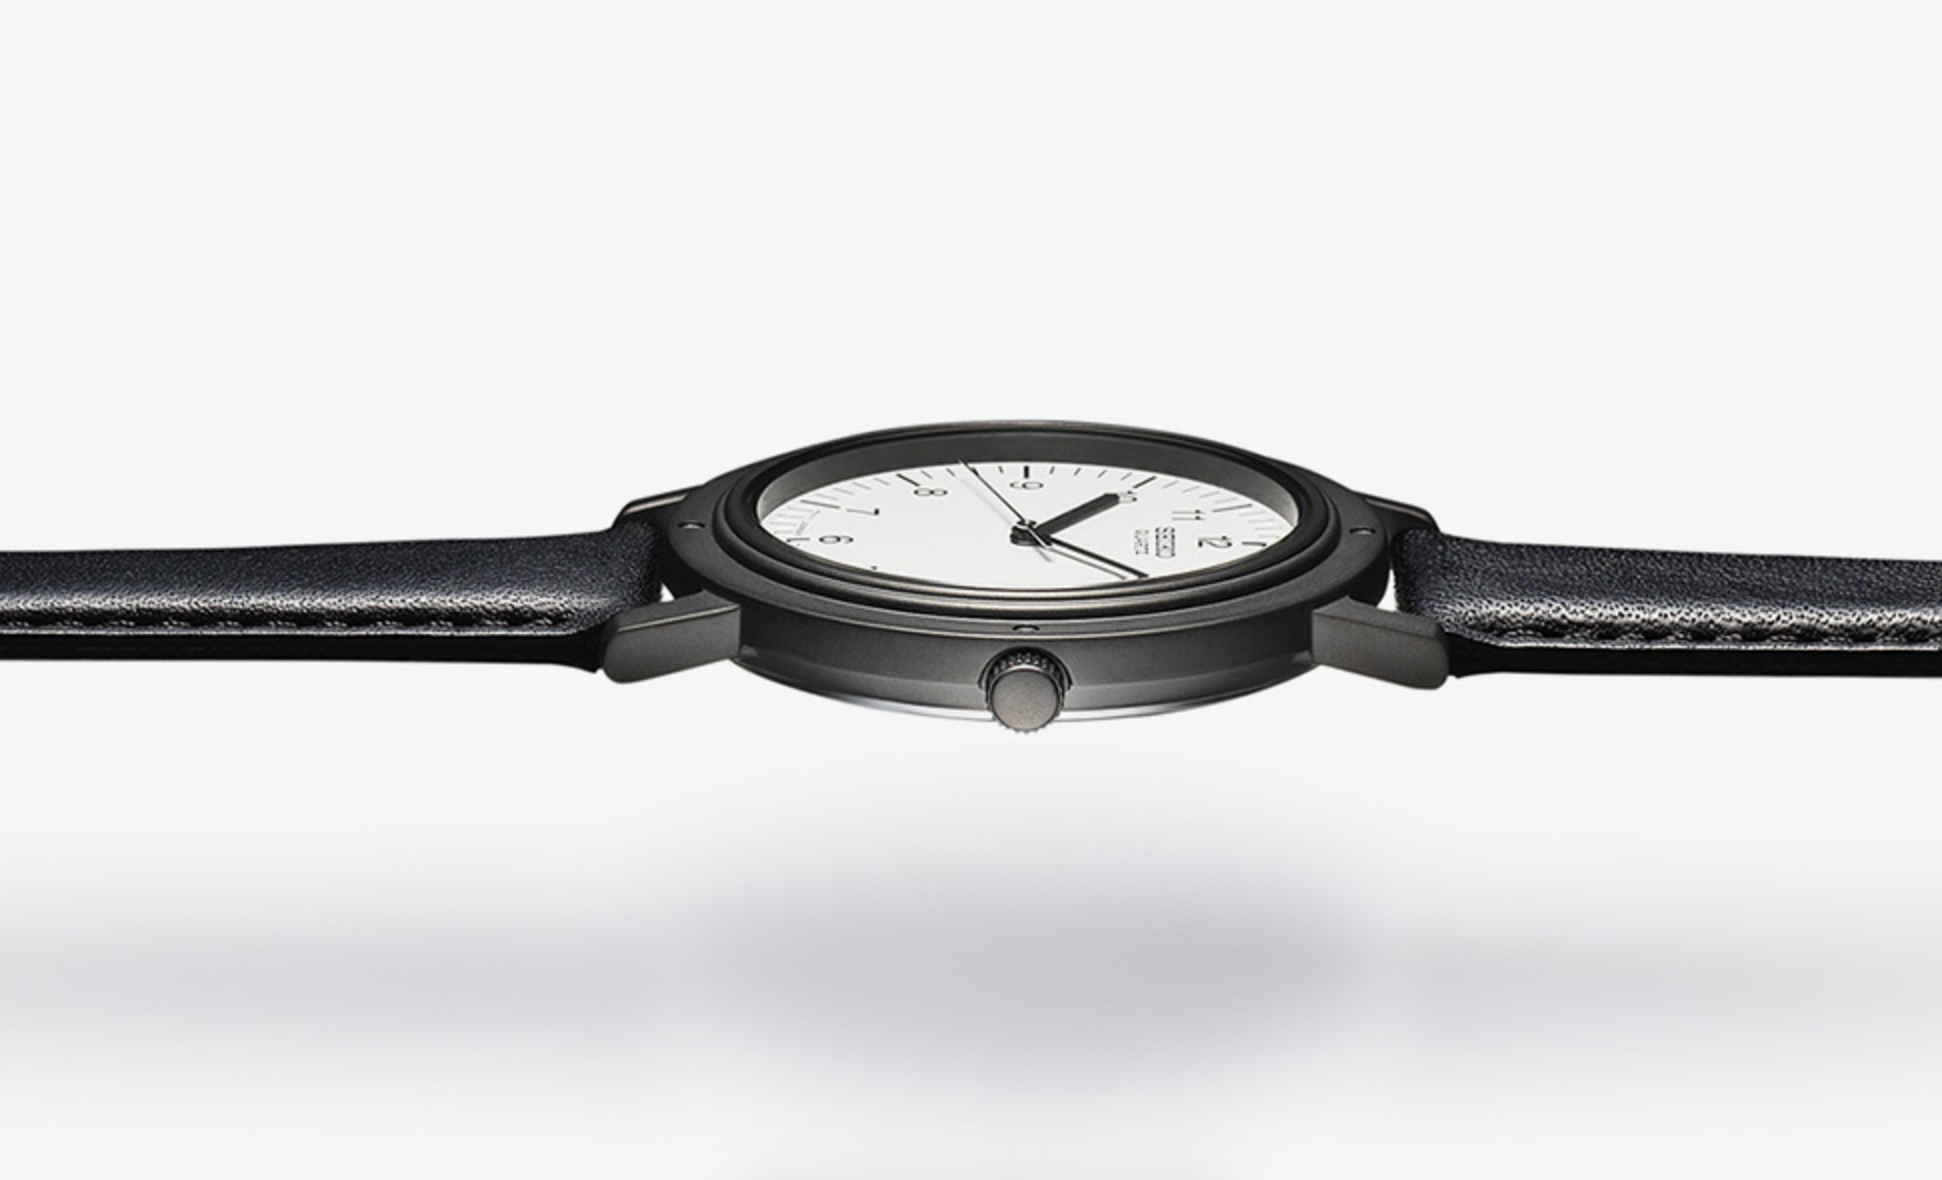 You Can Own A Limited Edition Version Steve Jobs Iconic Seiko Watch For Just 180